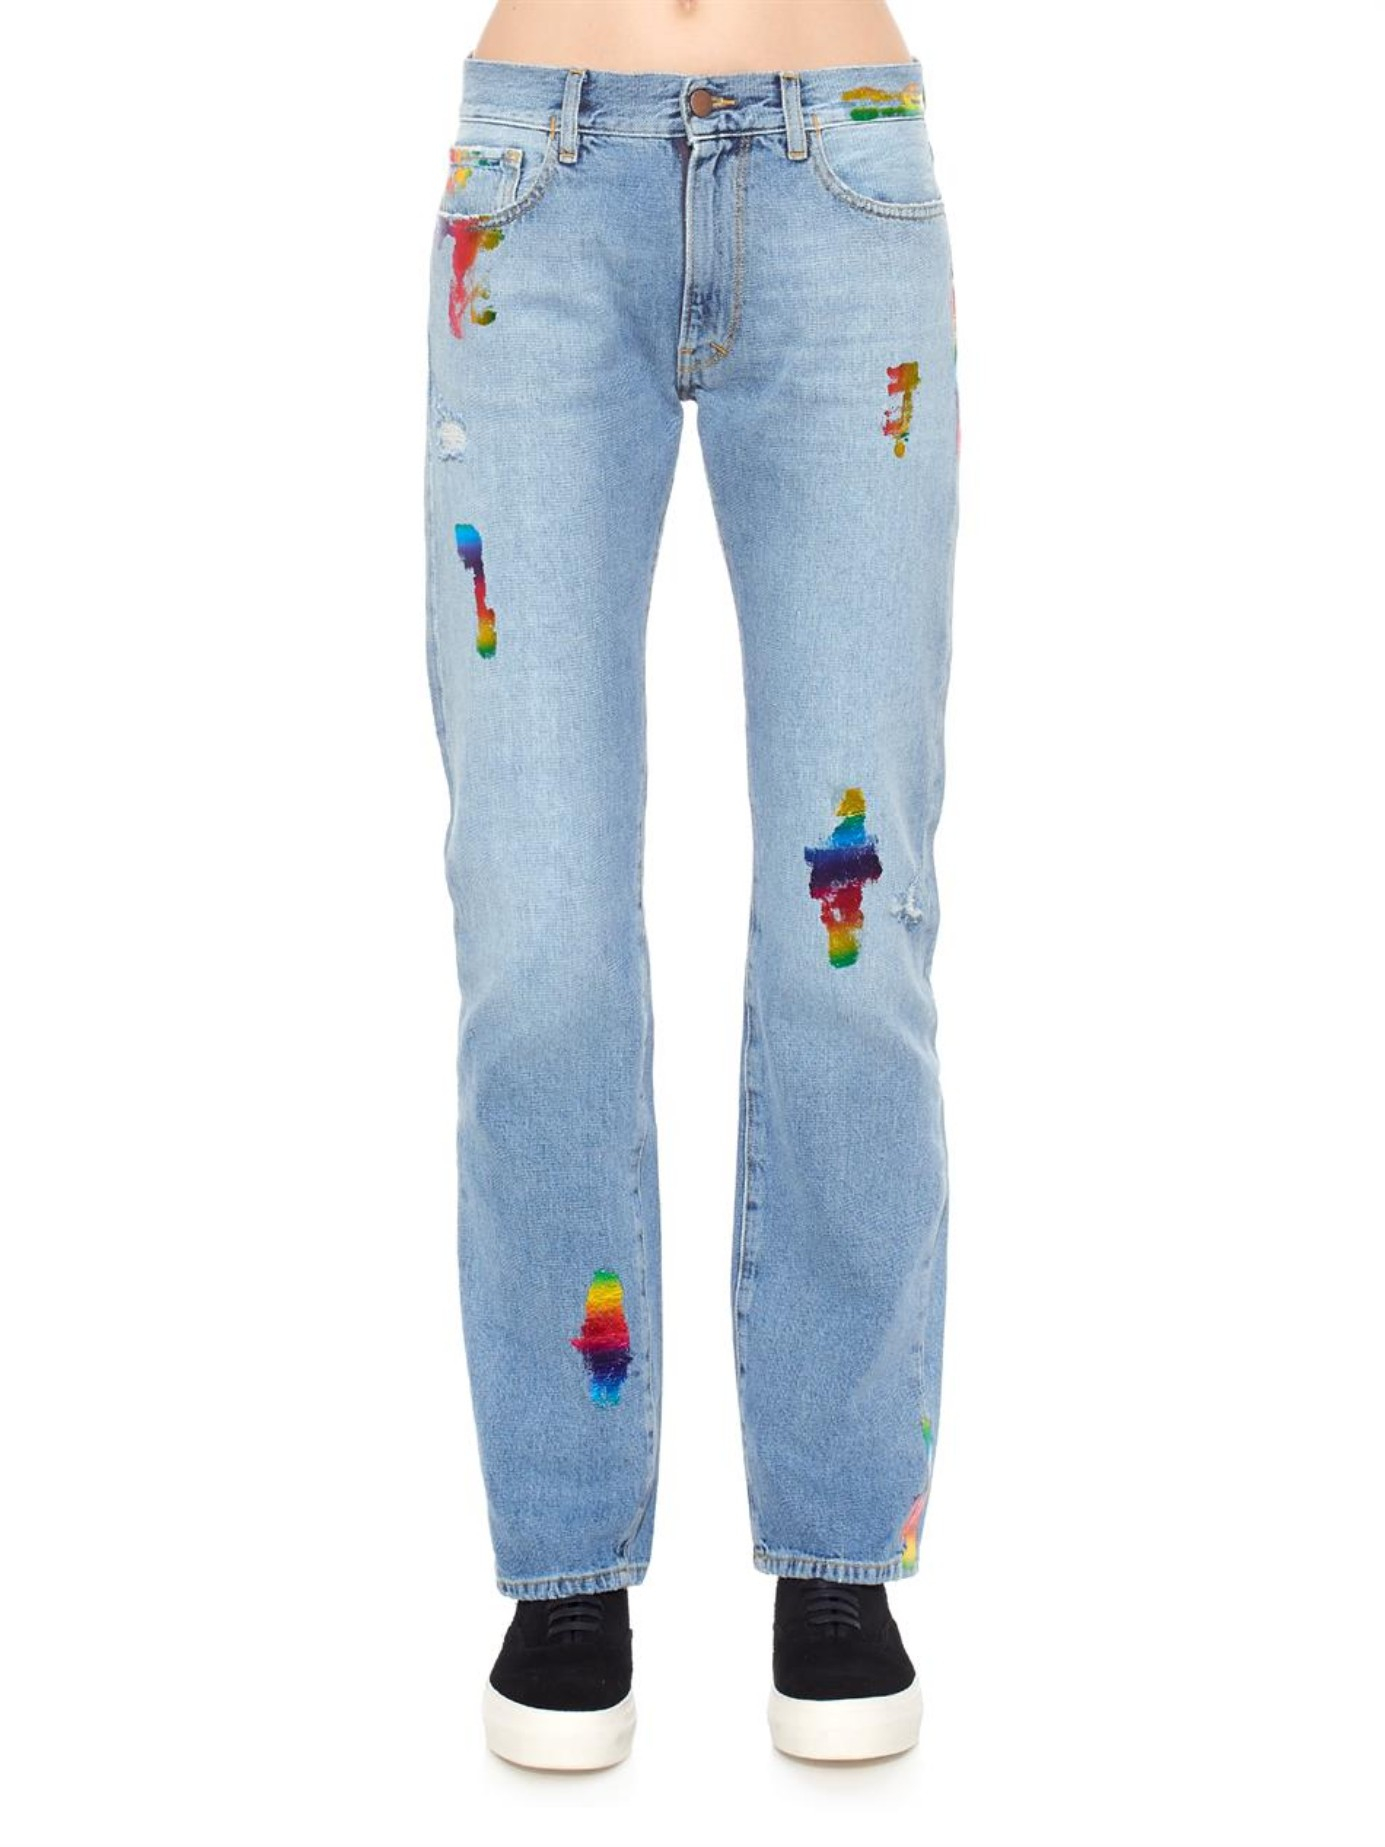 lyst aries simon rainbow foil boyfriend jeans in blue. Black Bedroom Furniture Sets. Home Design Ideas